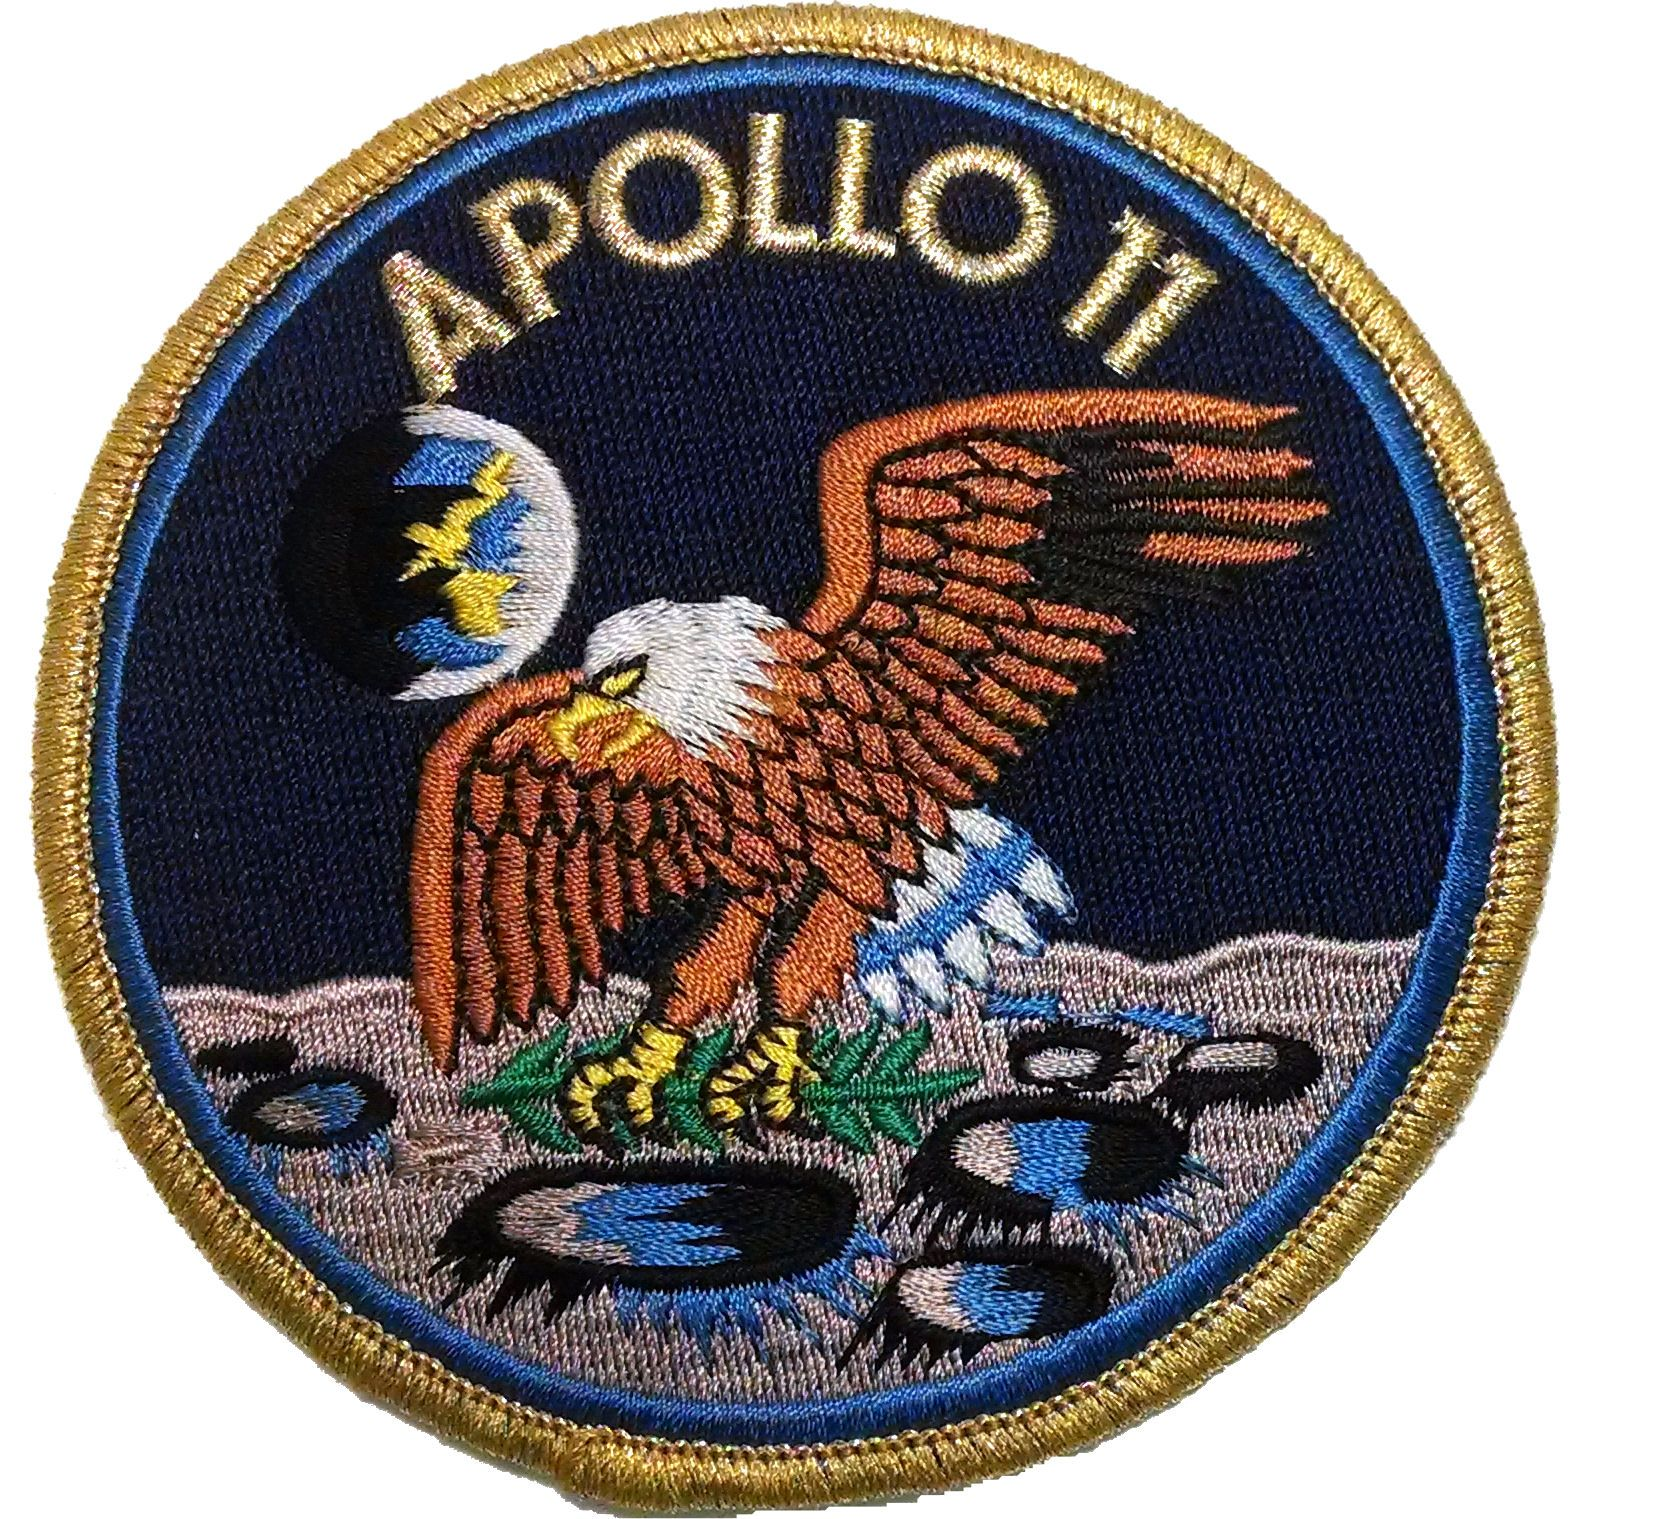 Apollo 11 NASA Patch - Pics about space | Patches ...